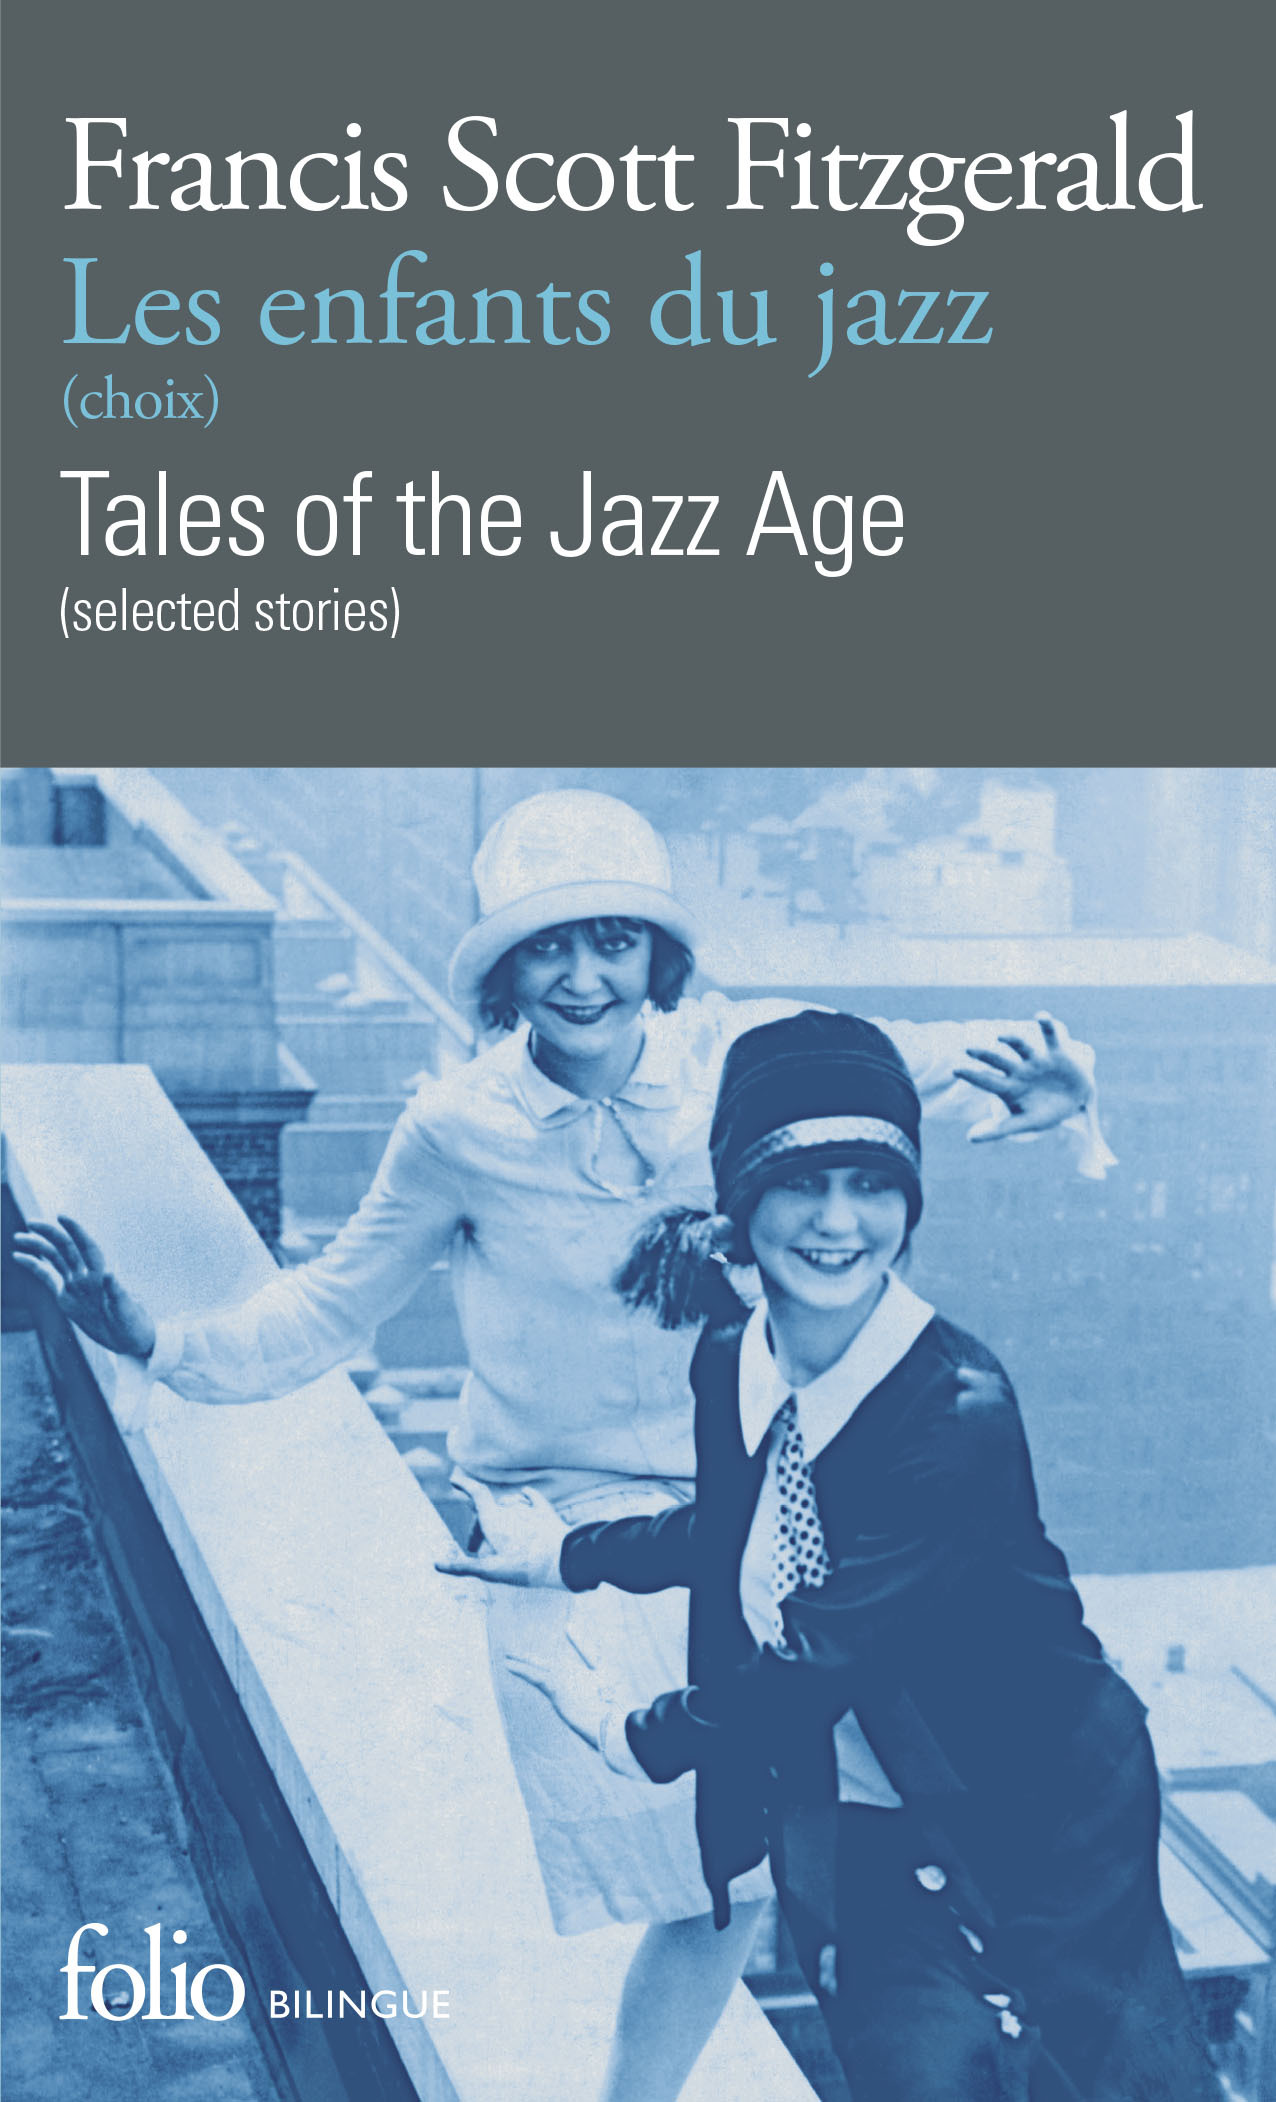 TALES OF THE JAZZ AGE SELECTED STORIES